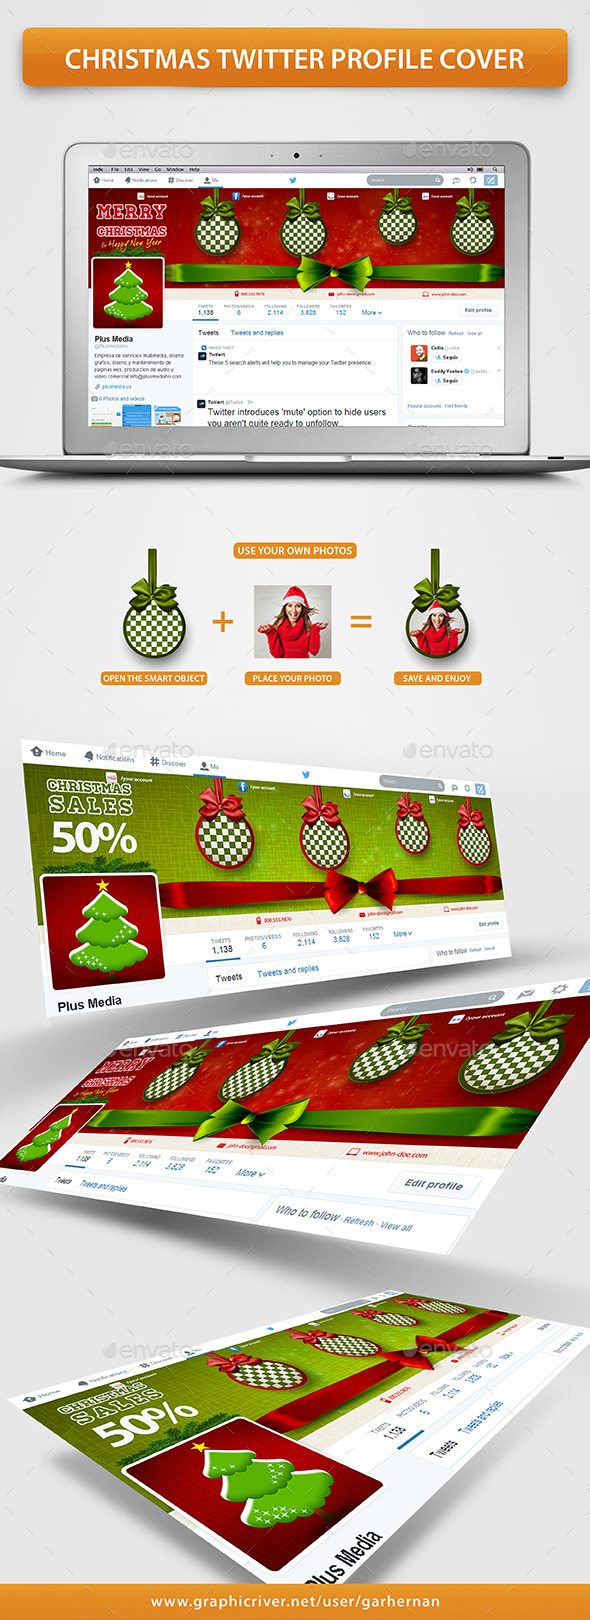 GraphicRiver Christmas Twitter Profile Cover 9637267